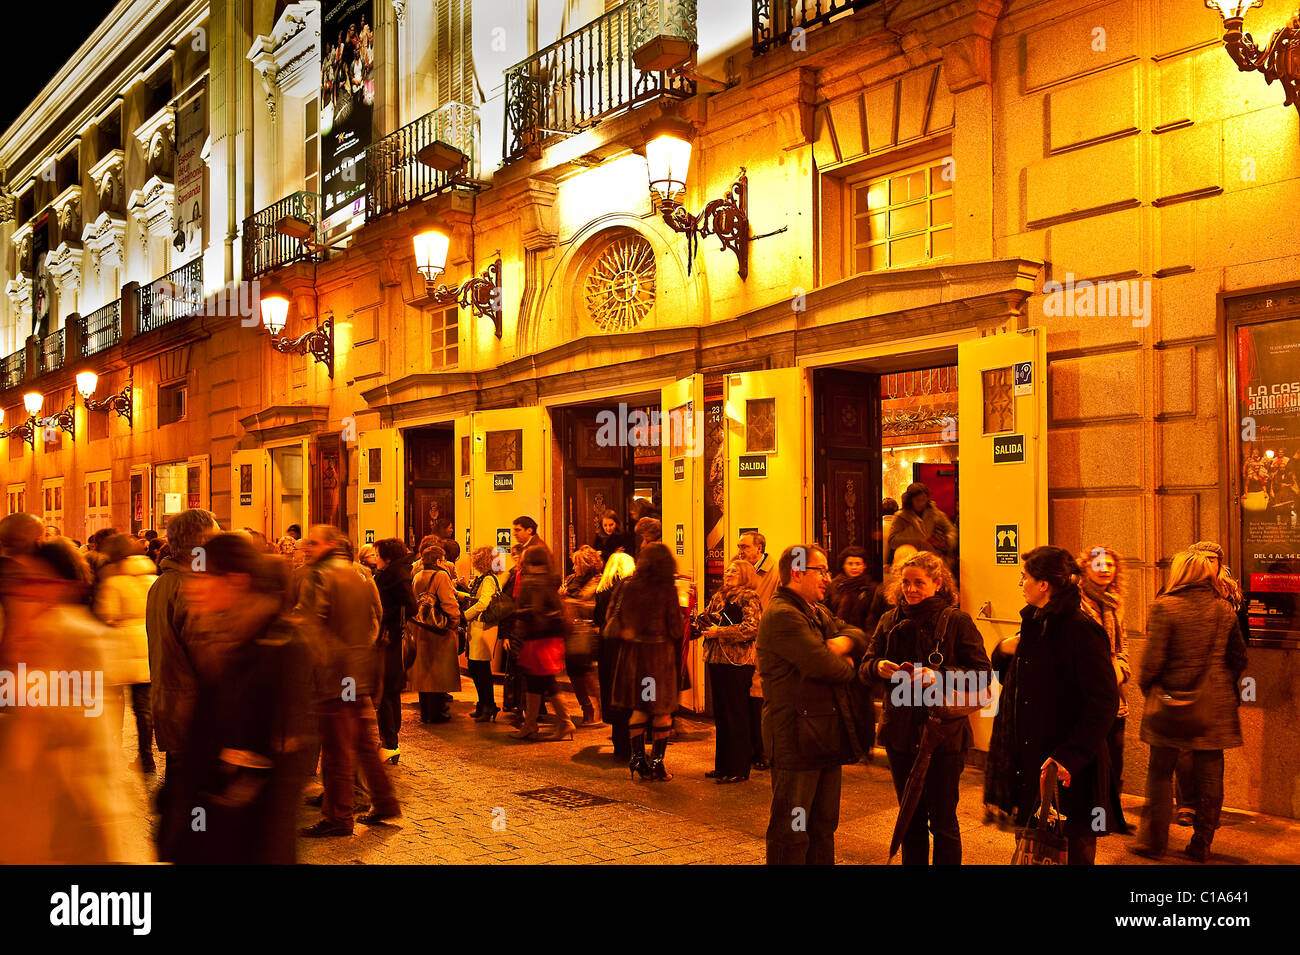 Teatro Espanol, Plaza Santa Ana, Madrid, Spain - Stock Image